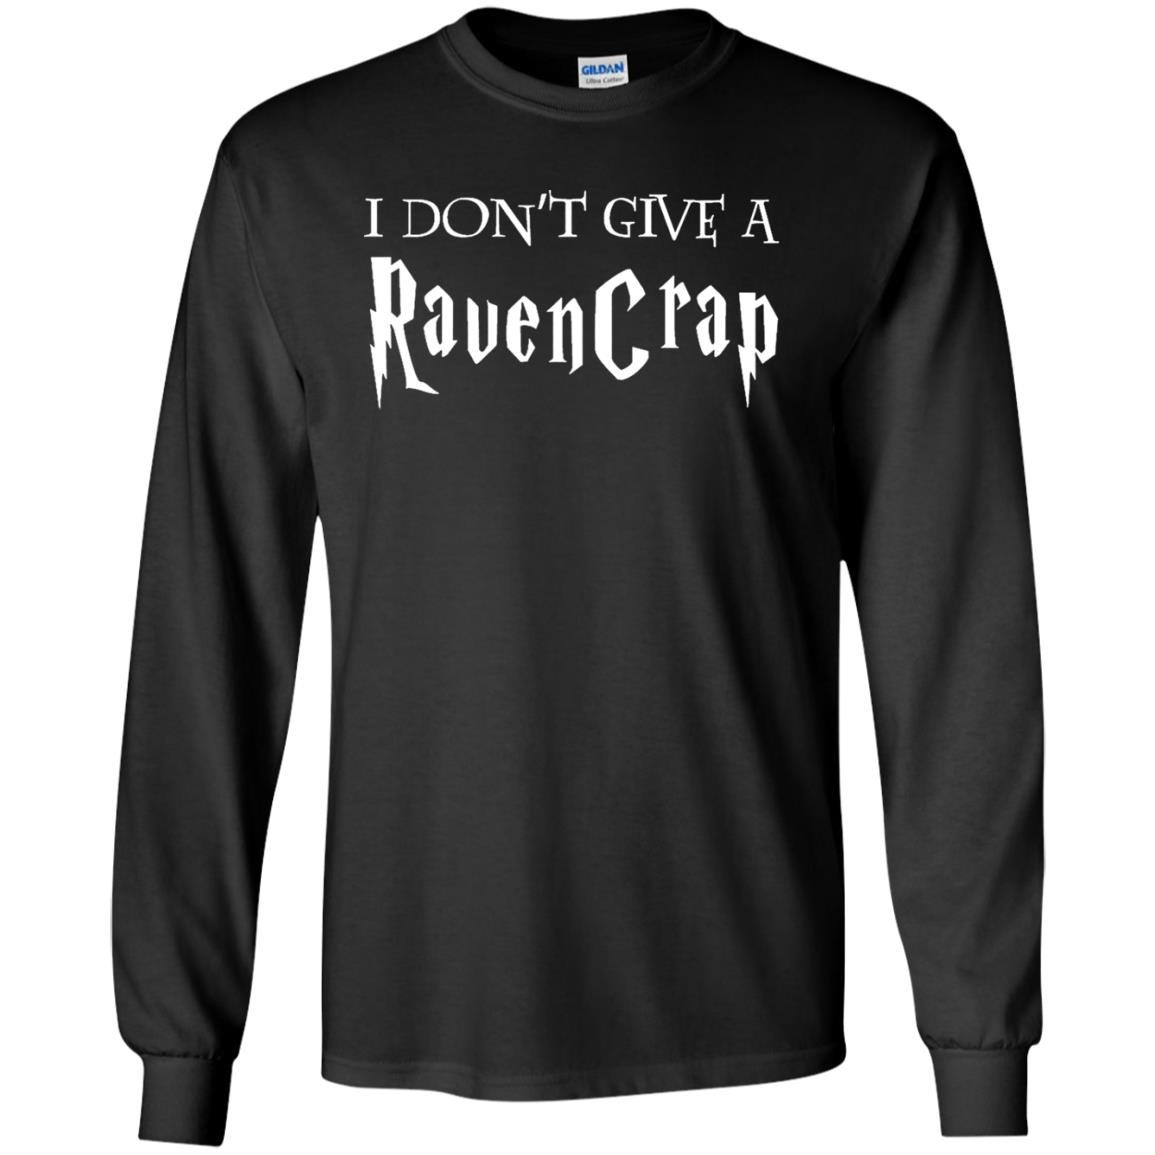 image 688 - Harry Potter: I don't give a Ravencrap shirt & sweater